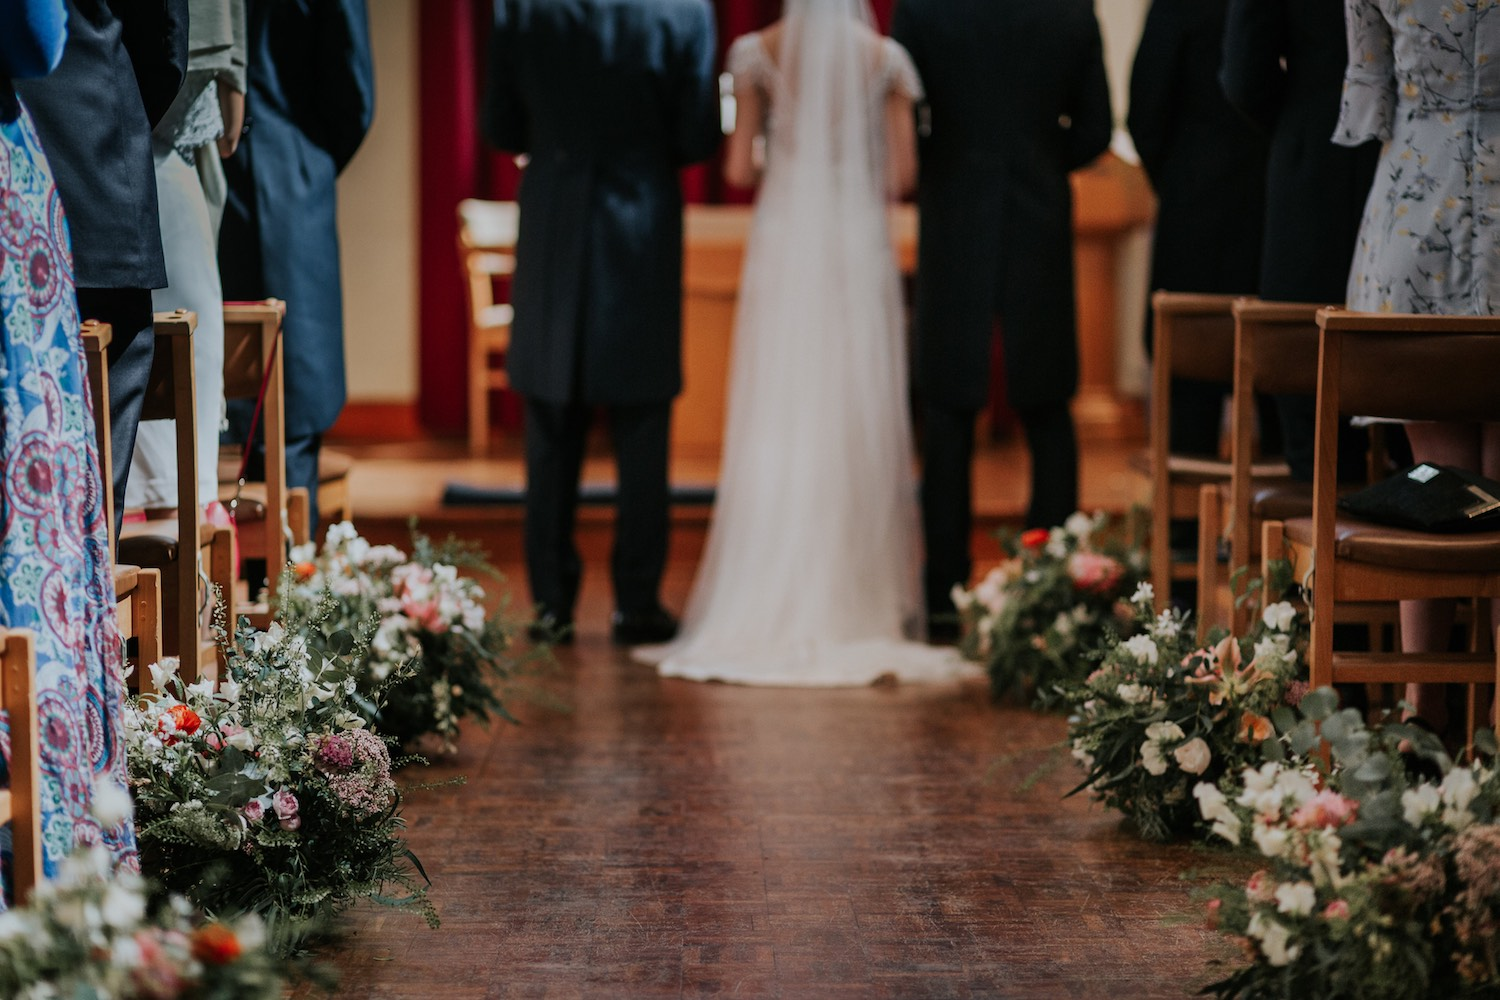 Church ceremony aisle flowers meadow style